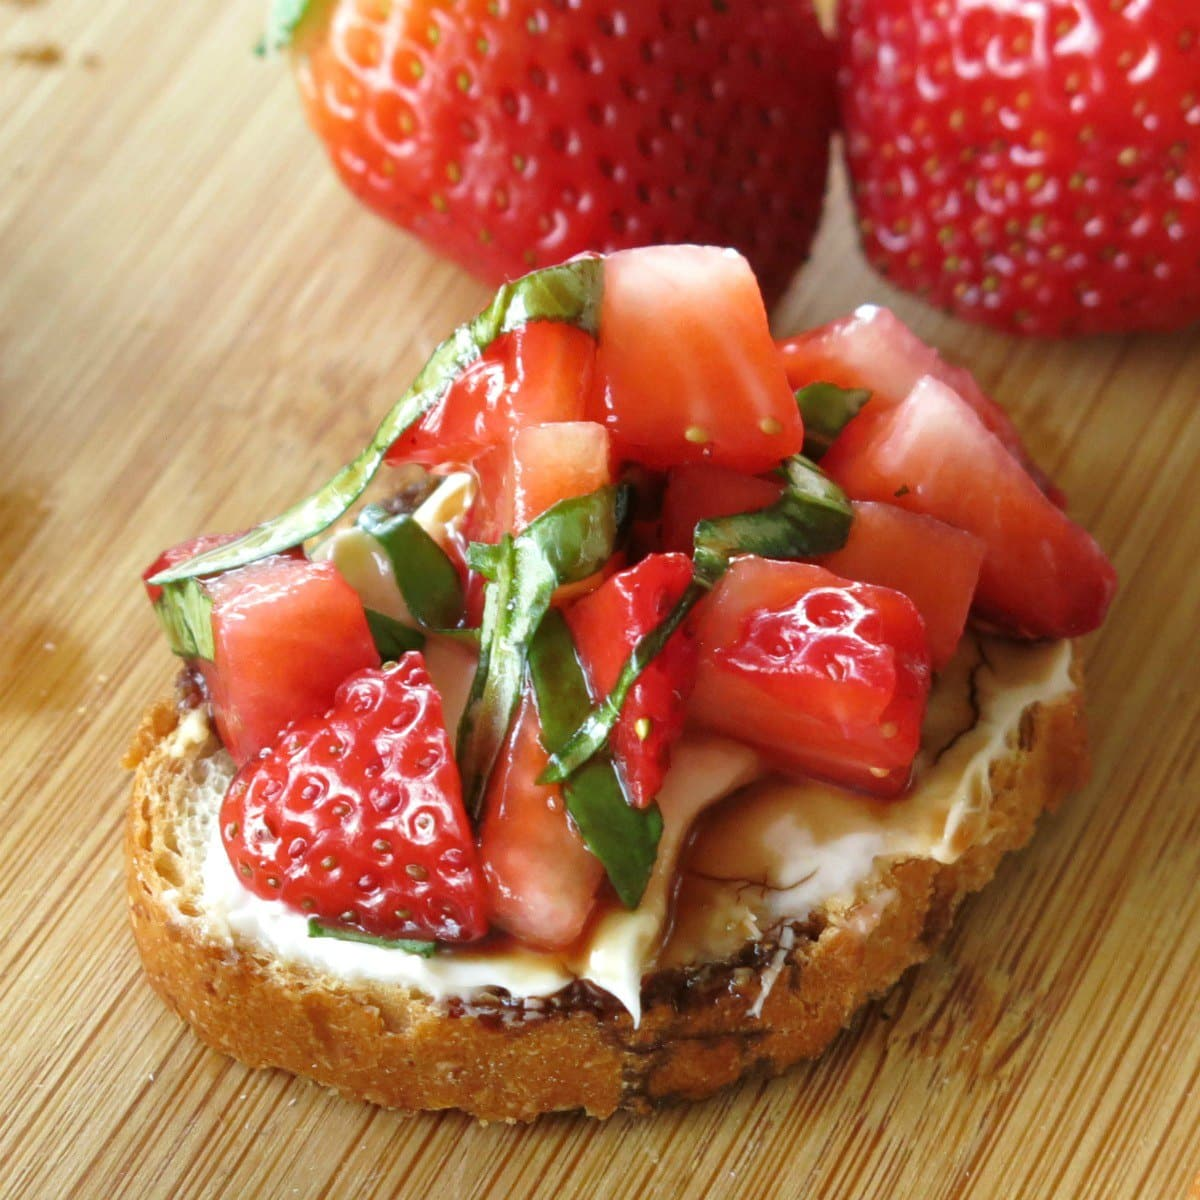 Strawberry Bruschetta with cream cheese, basil and balsamic vinegar reduction on thin slice of baguette.